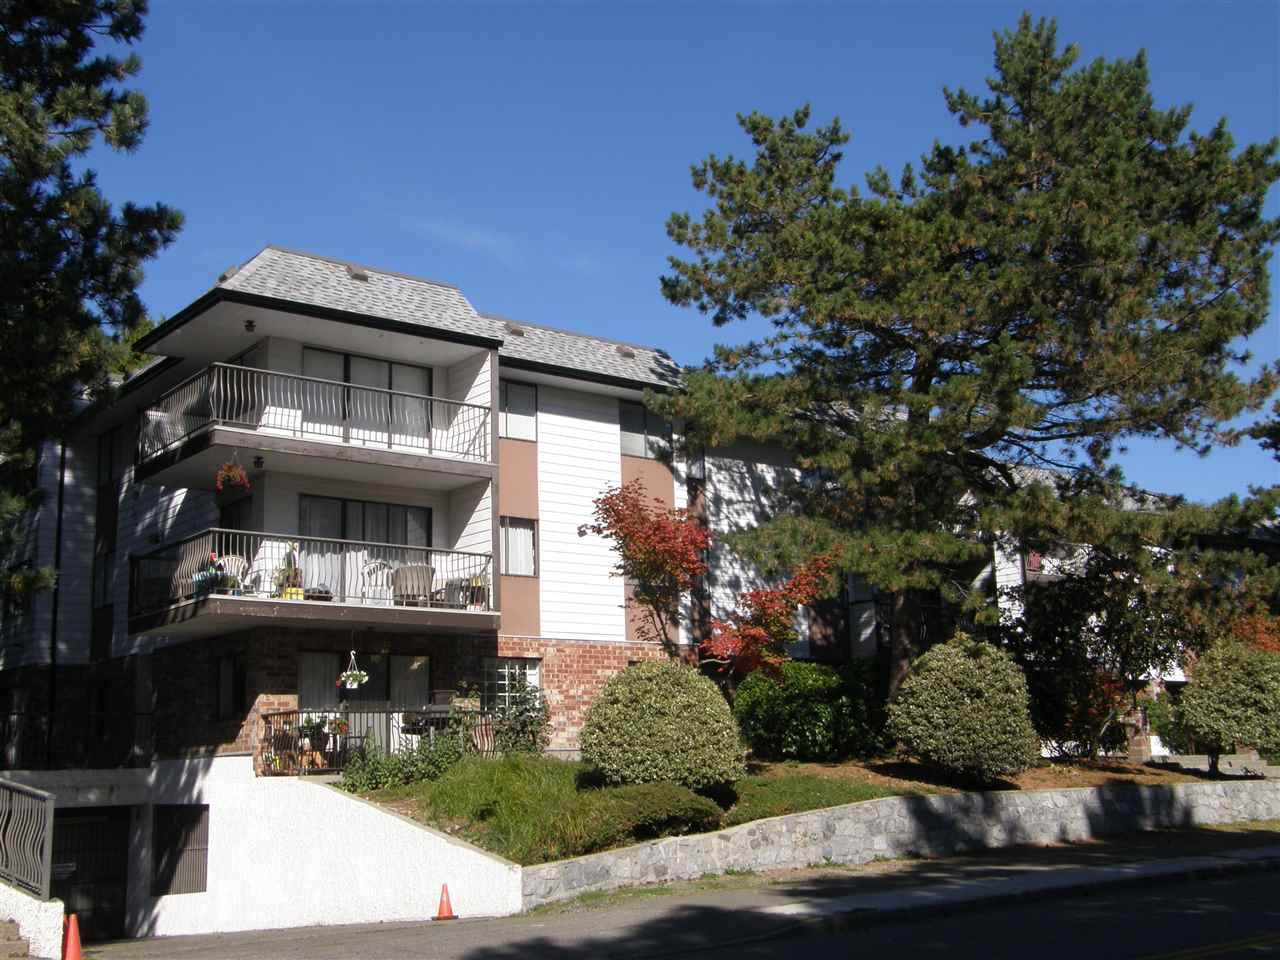 "Main Photo: 109 - 13977 - 74 Avenue in Surrey: East Newton Condo for sale in ""GLENCOE ESTATES"" : MLS®# R2389992"